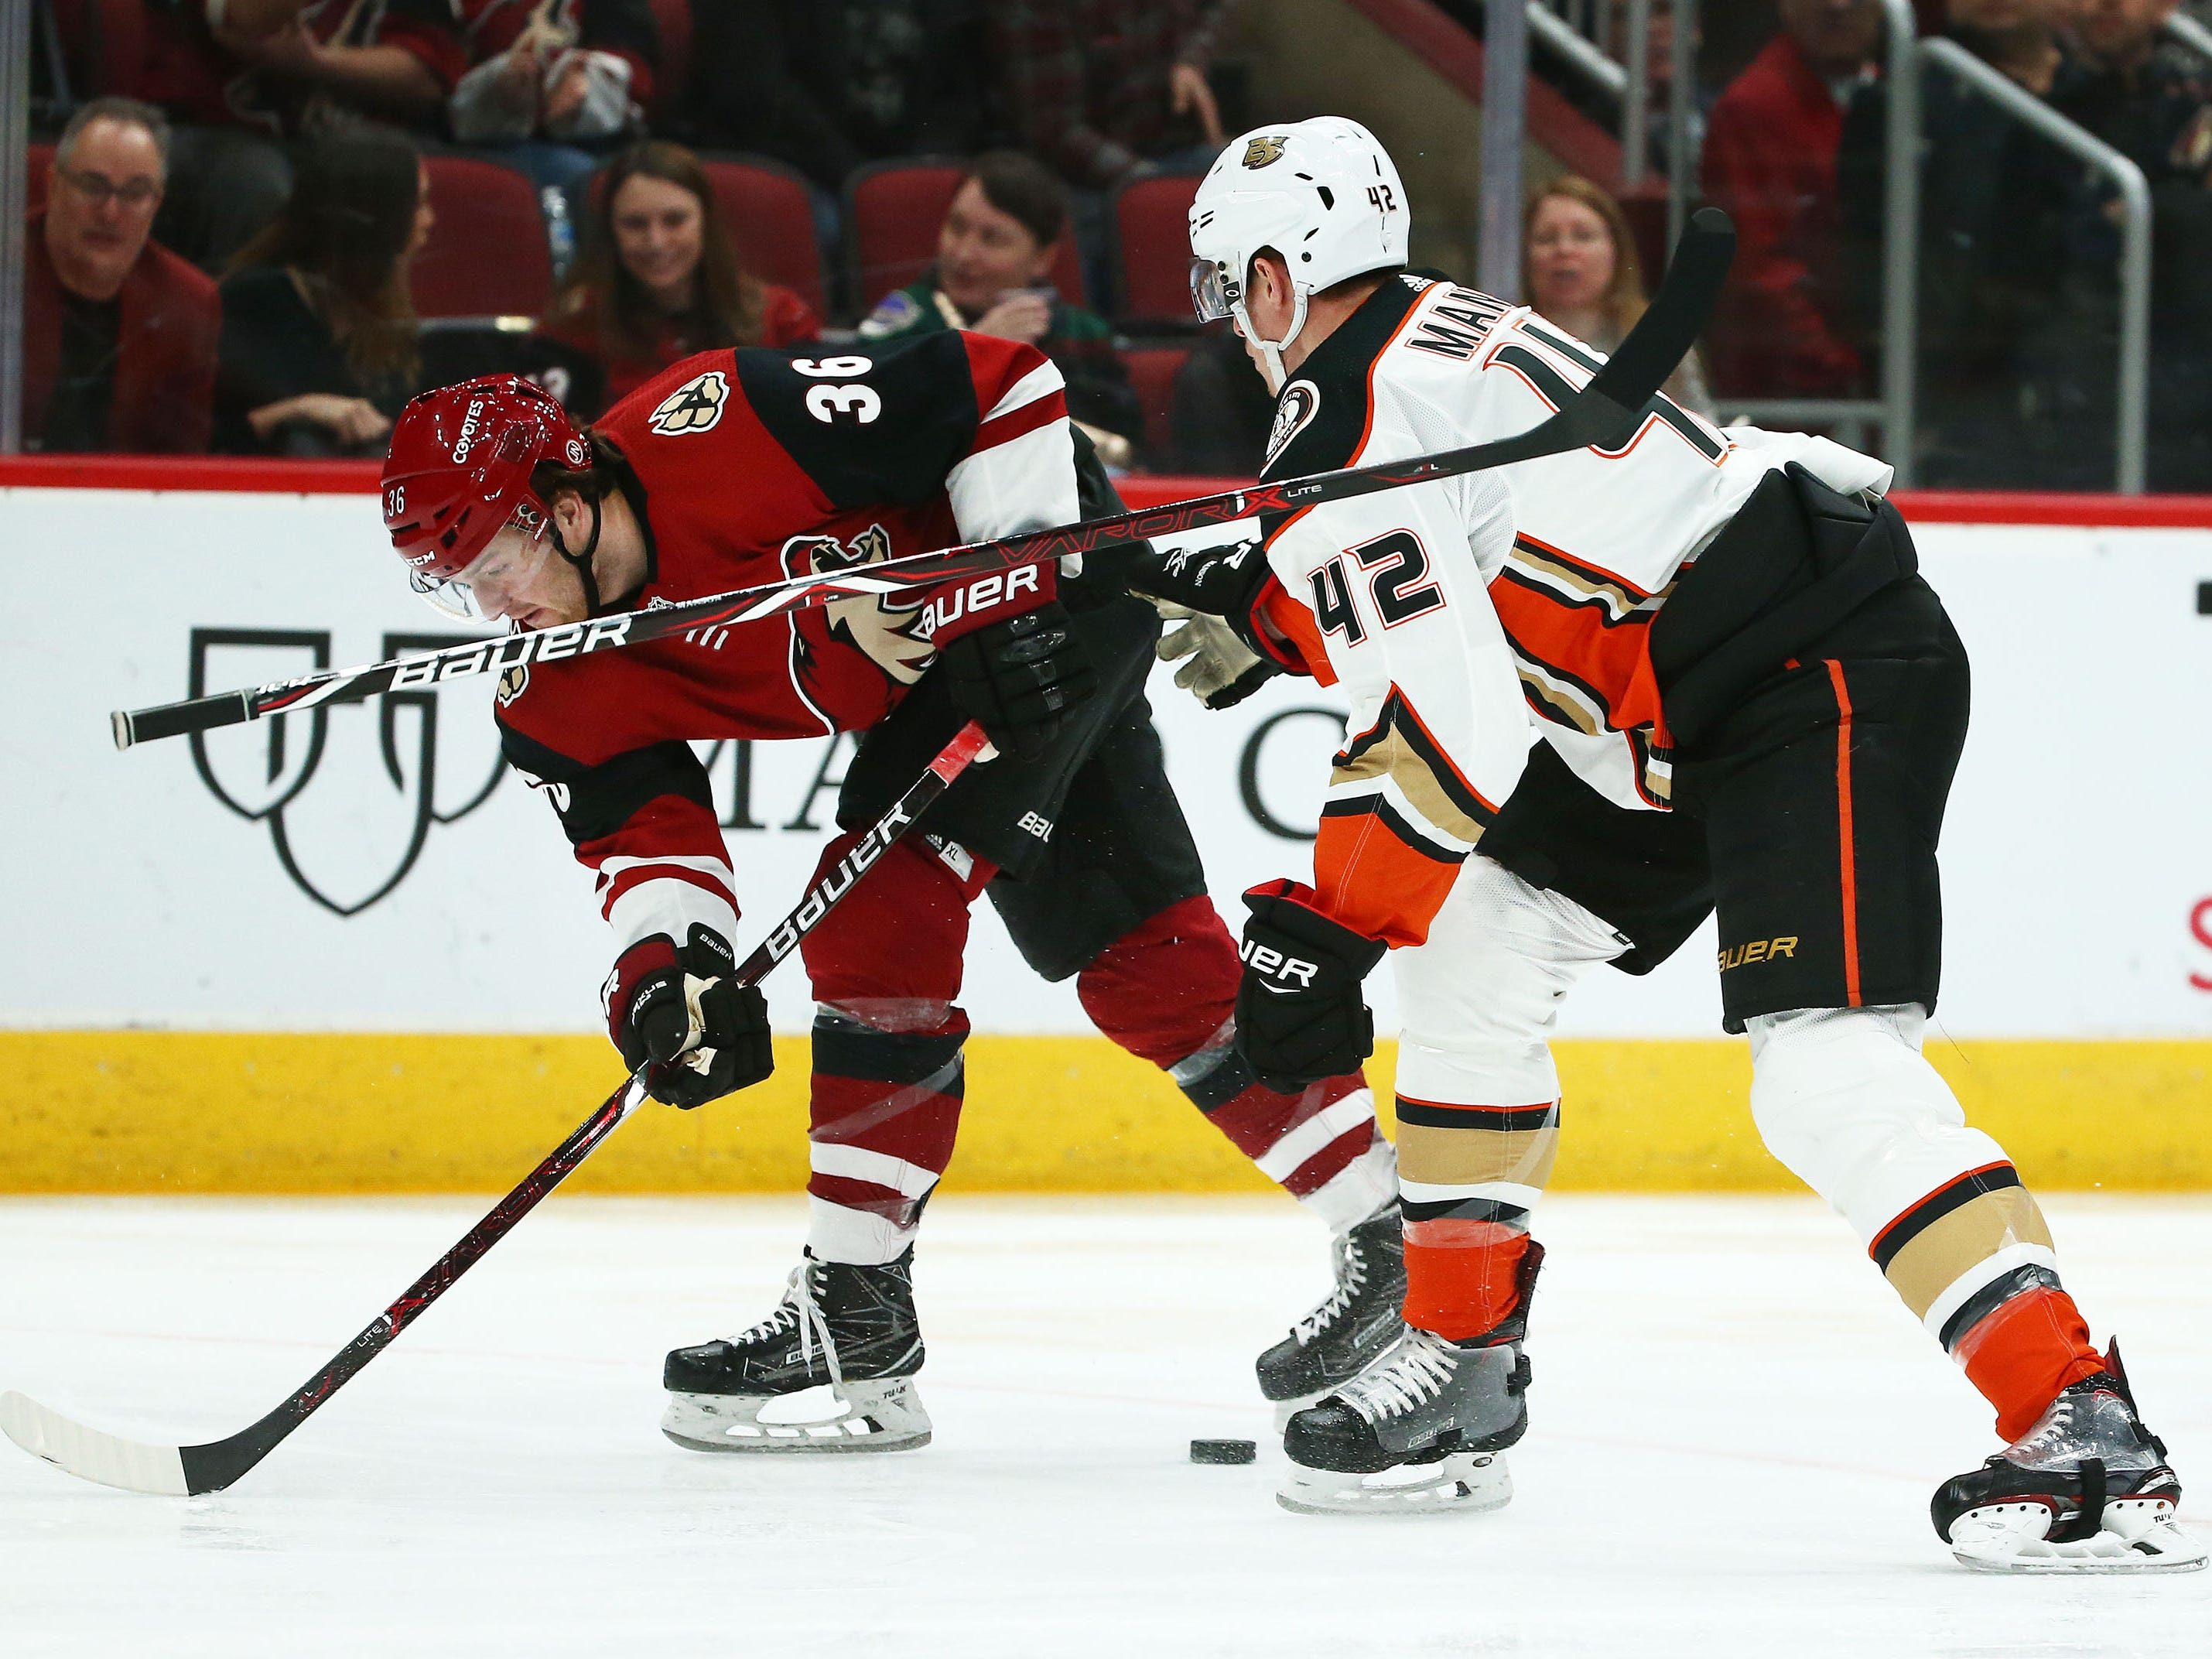 Anaheim Ducks defenseman Josh Manson (42) looses his stick against Arizona Coyotes right wing Christian Fischer (36) in the second period on Mar. 5, 2019, at Gila River Arena in Glendale, Ariz.